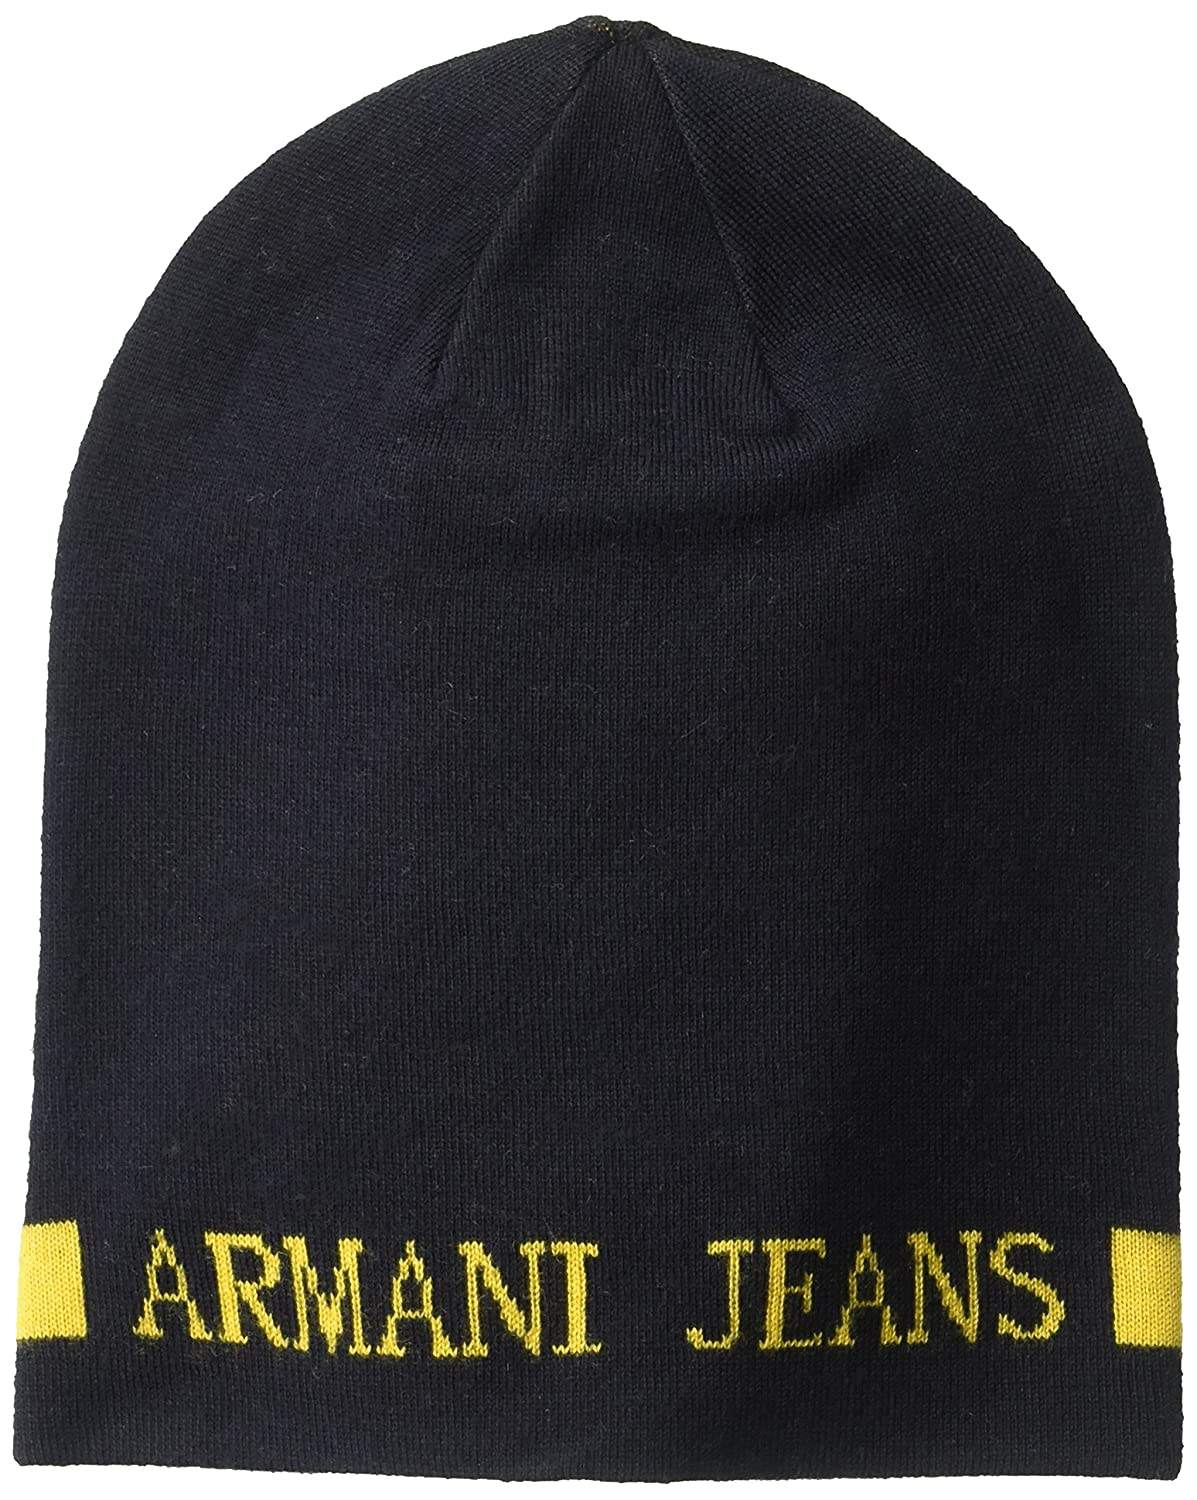 5e9c14a2180 Armani Exchange Men s Wool Blend Knit Beanie